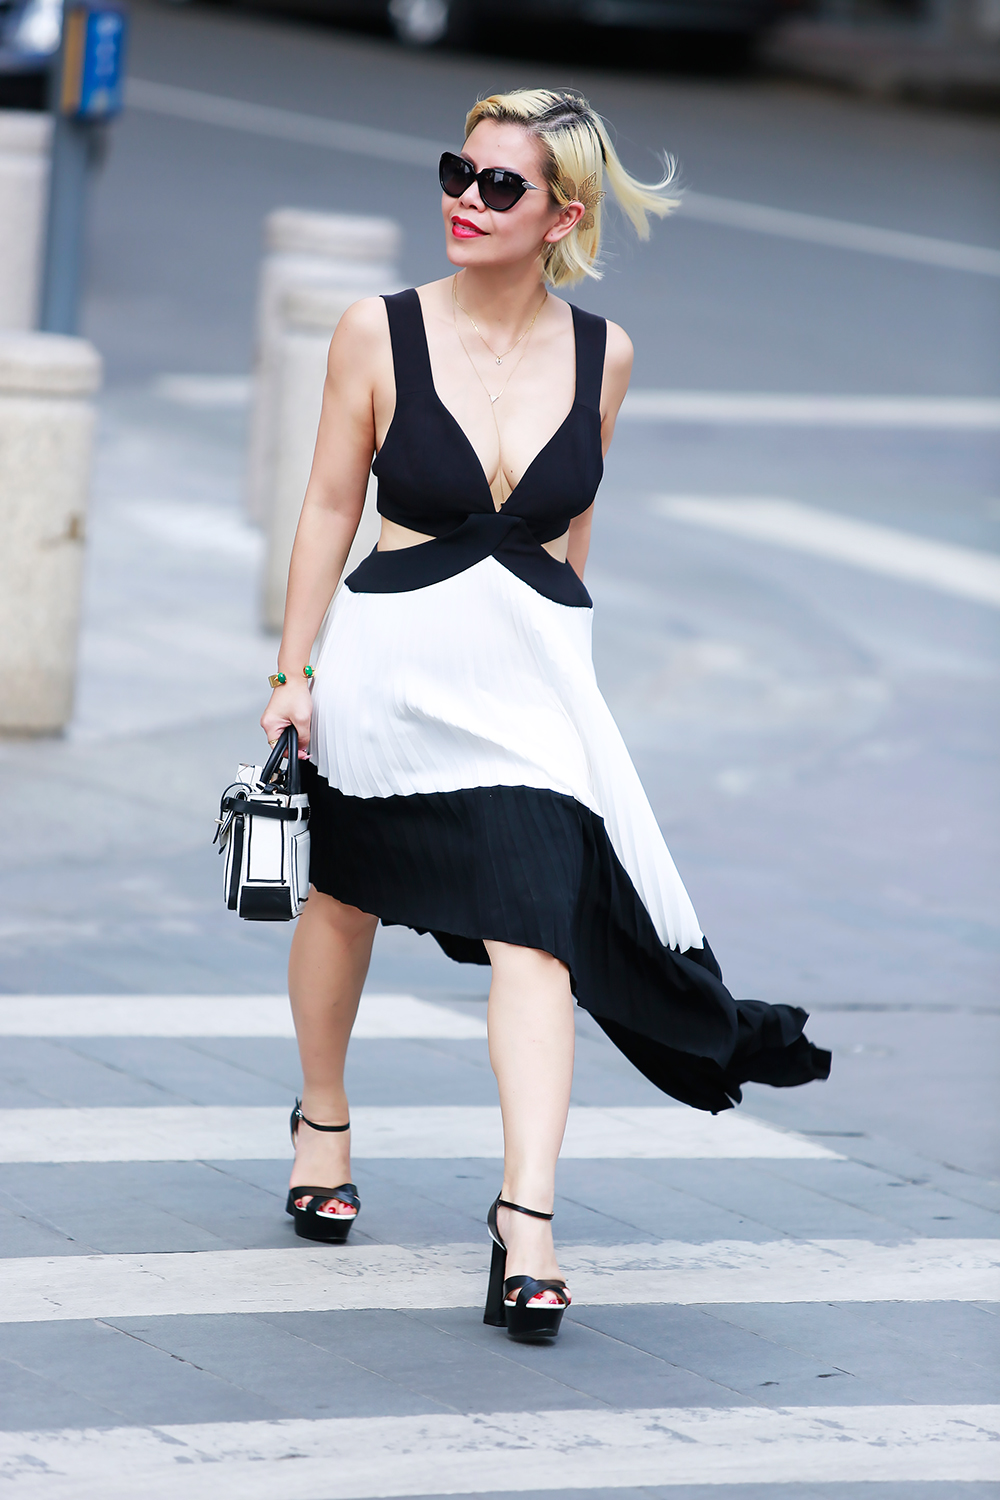 Crystal Phuong- Revolve Clothing- Streetstyle fashion blogger